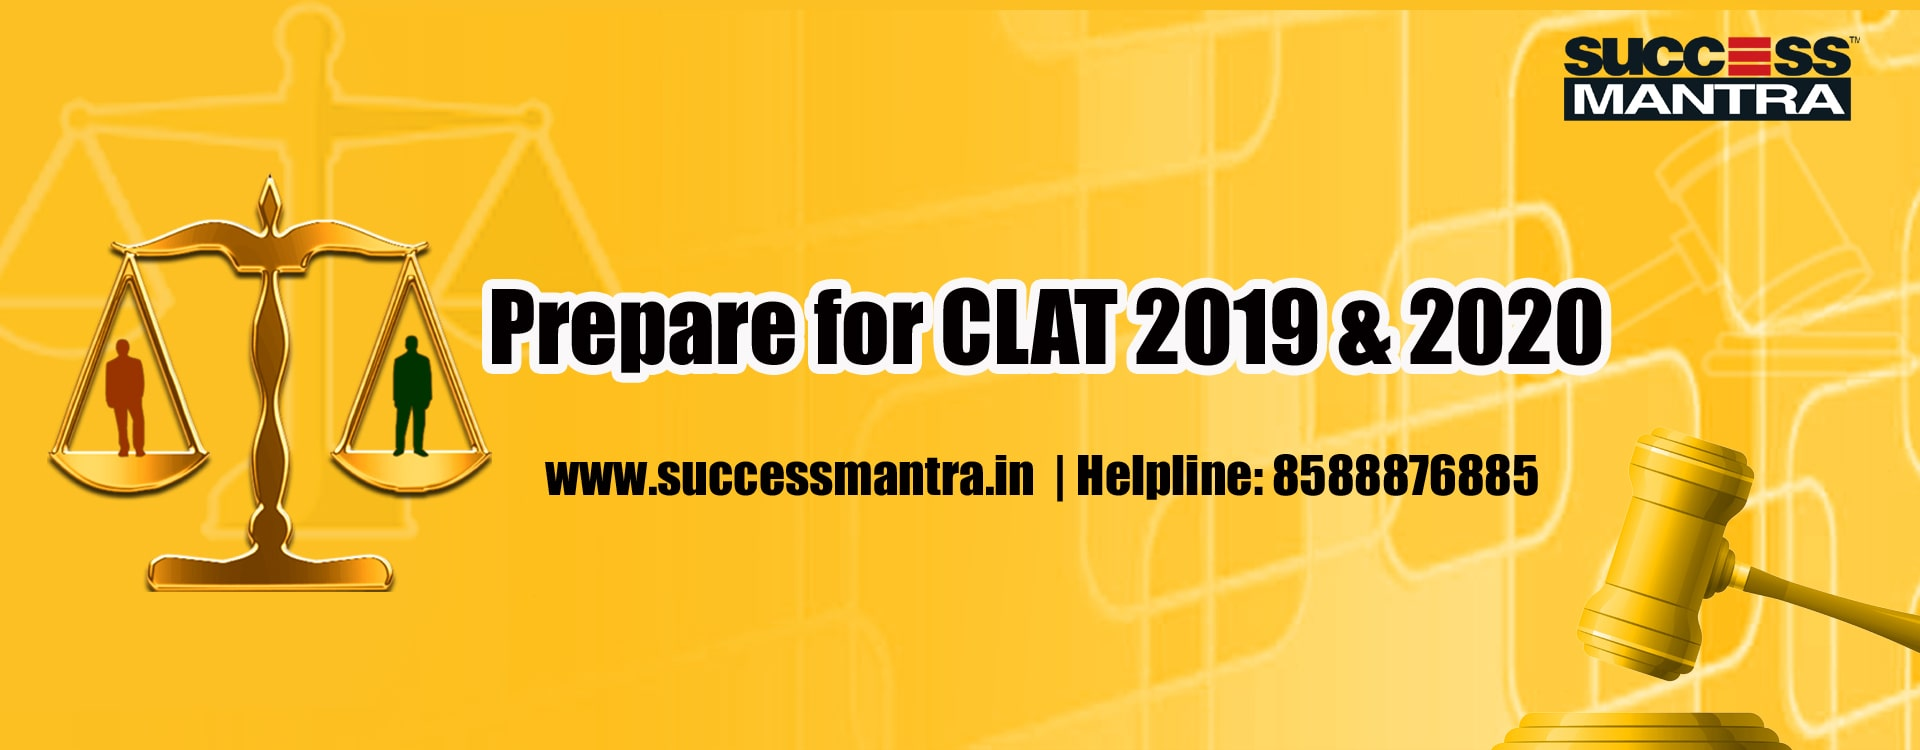 clat 2018 previous year paper, clat previous year paper analysis, clat 2020, clat 2019, Clat prepration tips, success mantra, how to crack clat